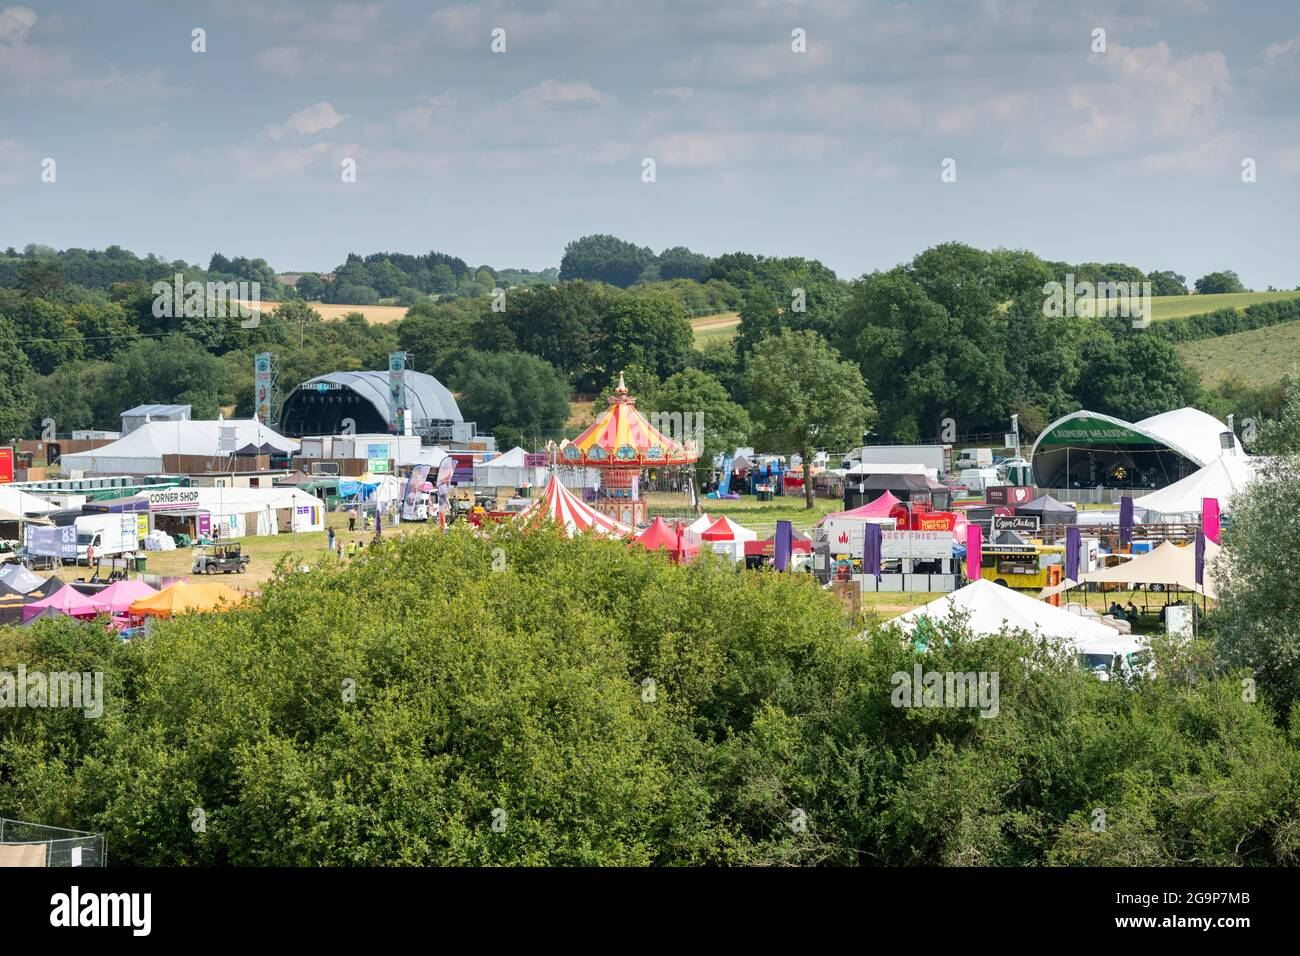 A view of the main event area at Standon Calling music festival 2021 Hertfordshire UK Stock Photo